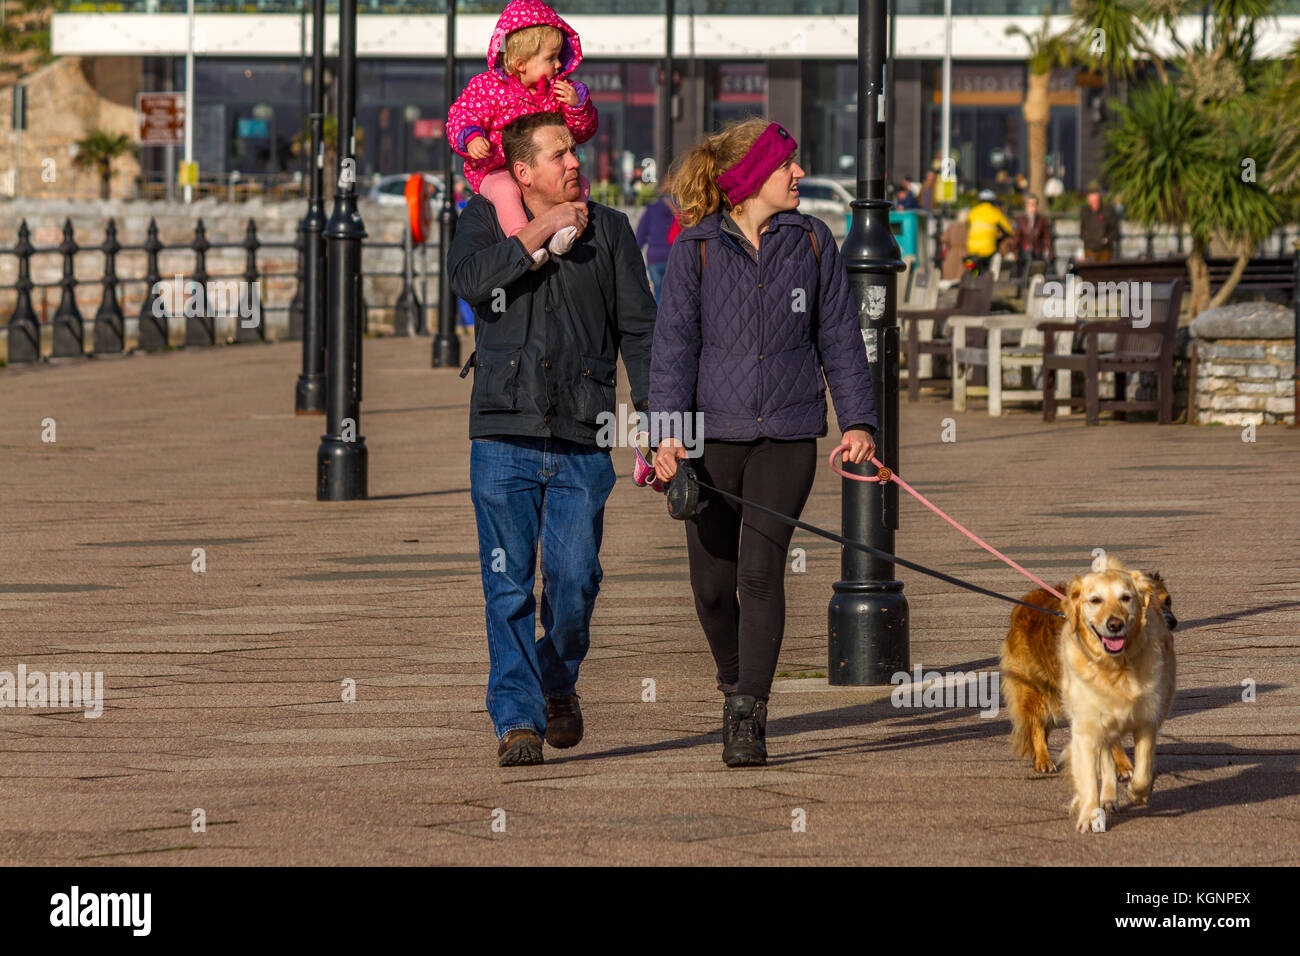 A family including a couple, with their young child on the man's shoulders, and their pet dog, walking along Torquay Stock Photo